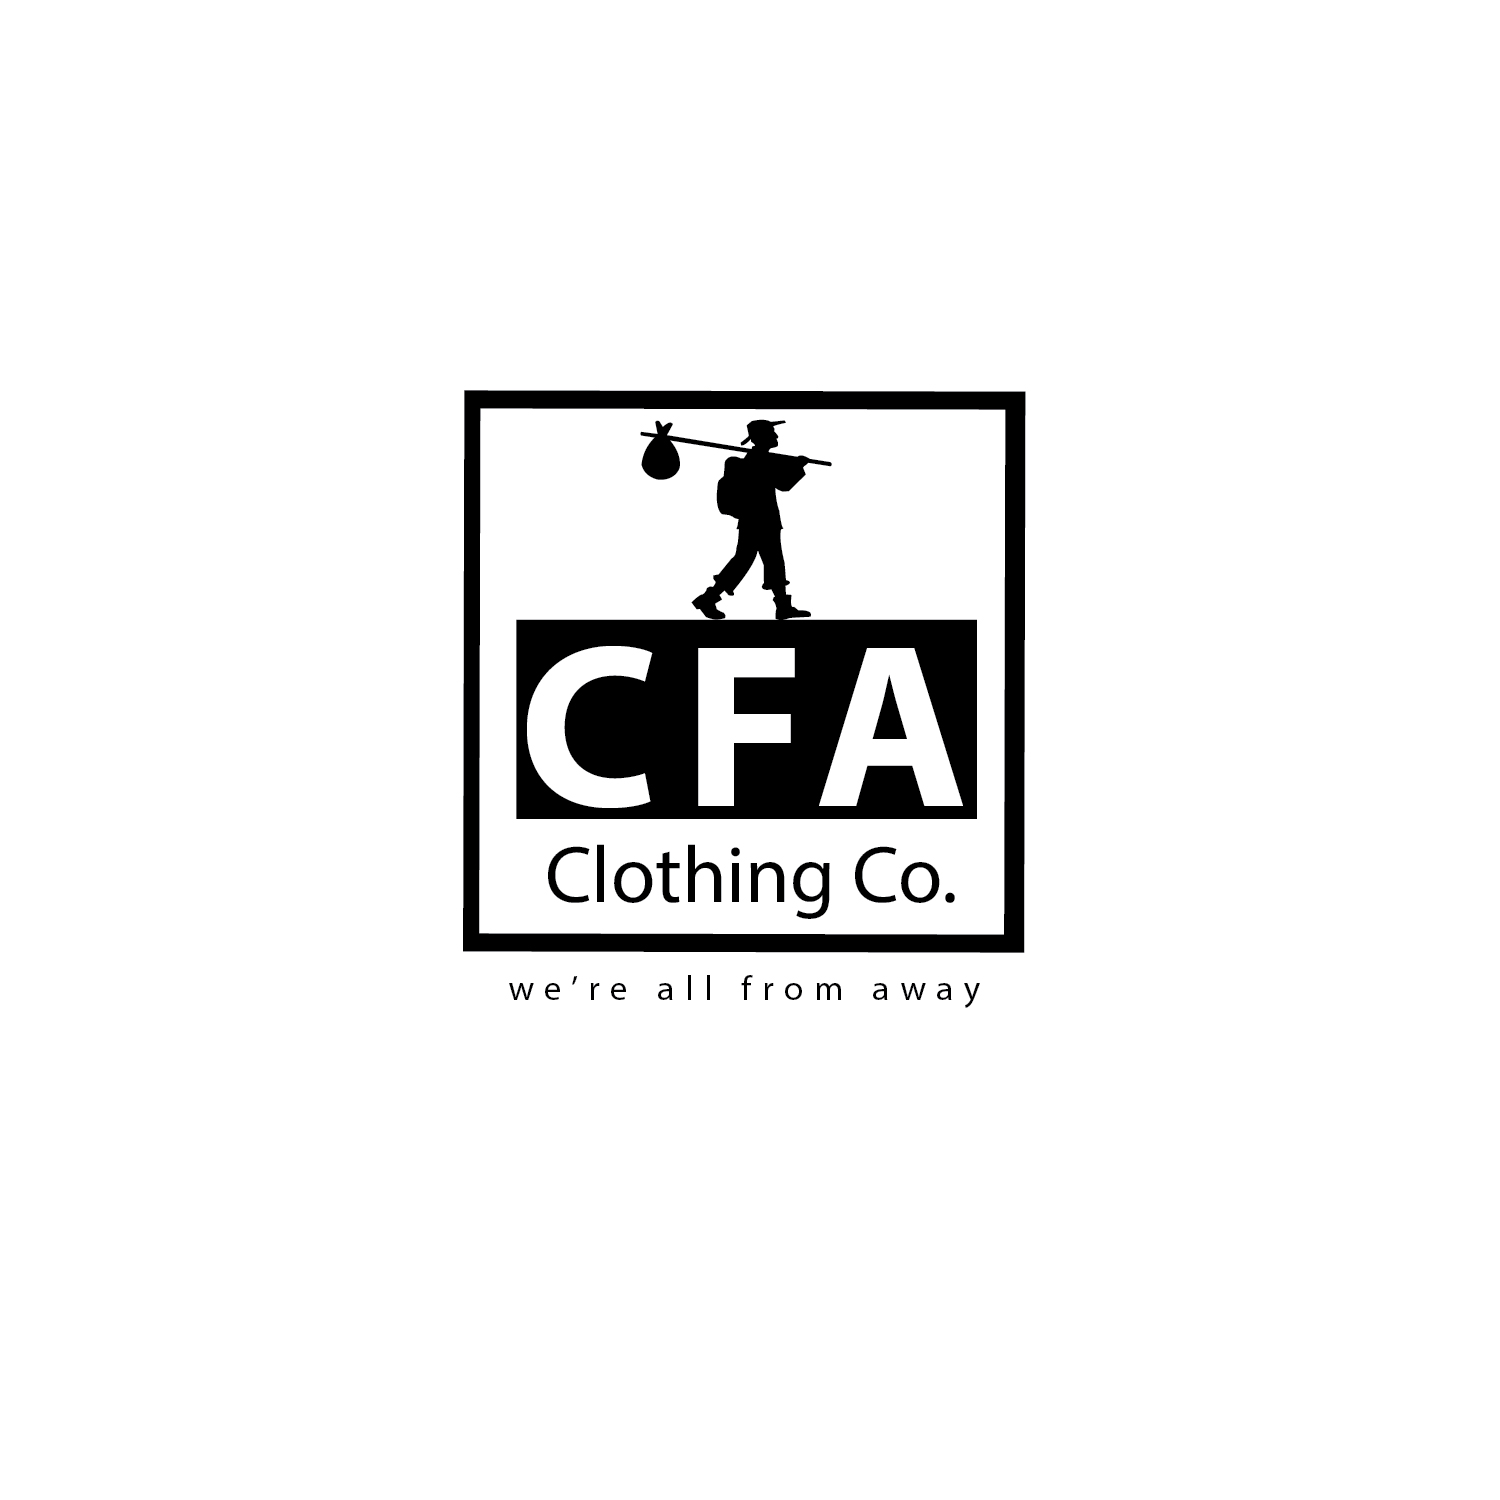 Logo Design by Shadman Sakib - Entry No. 205 in the Logo Design Contest Artistic Logo Design for Come From Away Clothing Company.